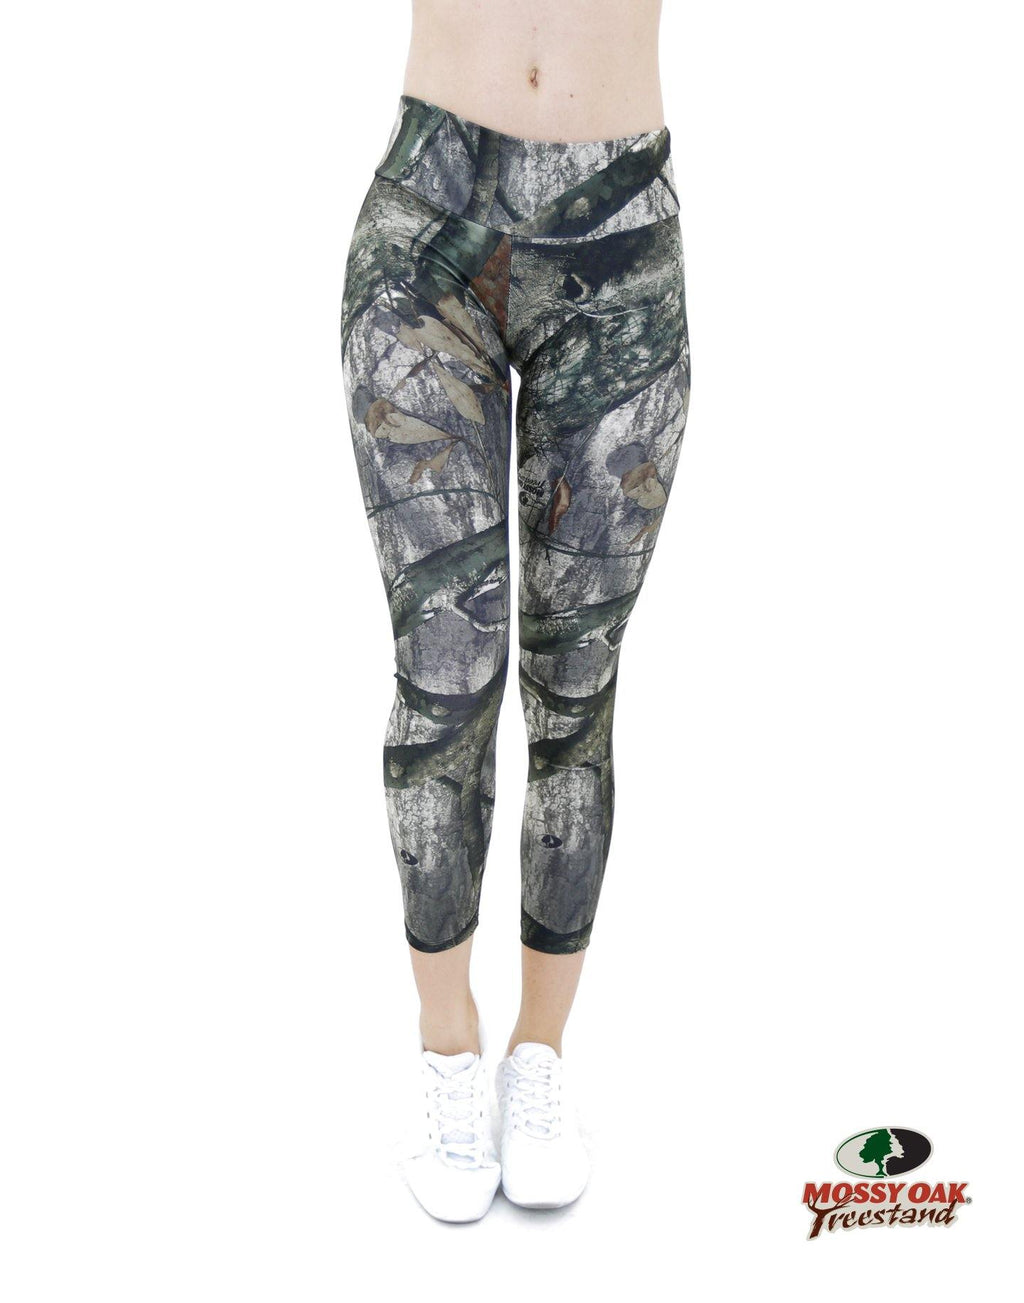 Apsara Leggings Low Waist Cropped, Mossy Oak Treestand - Apsara Style